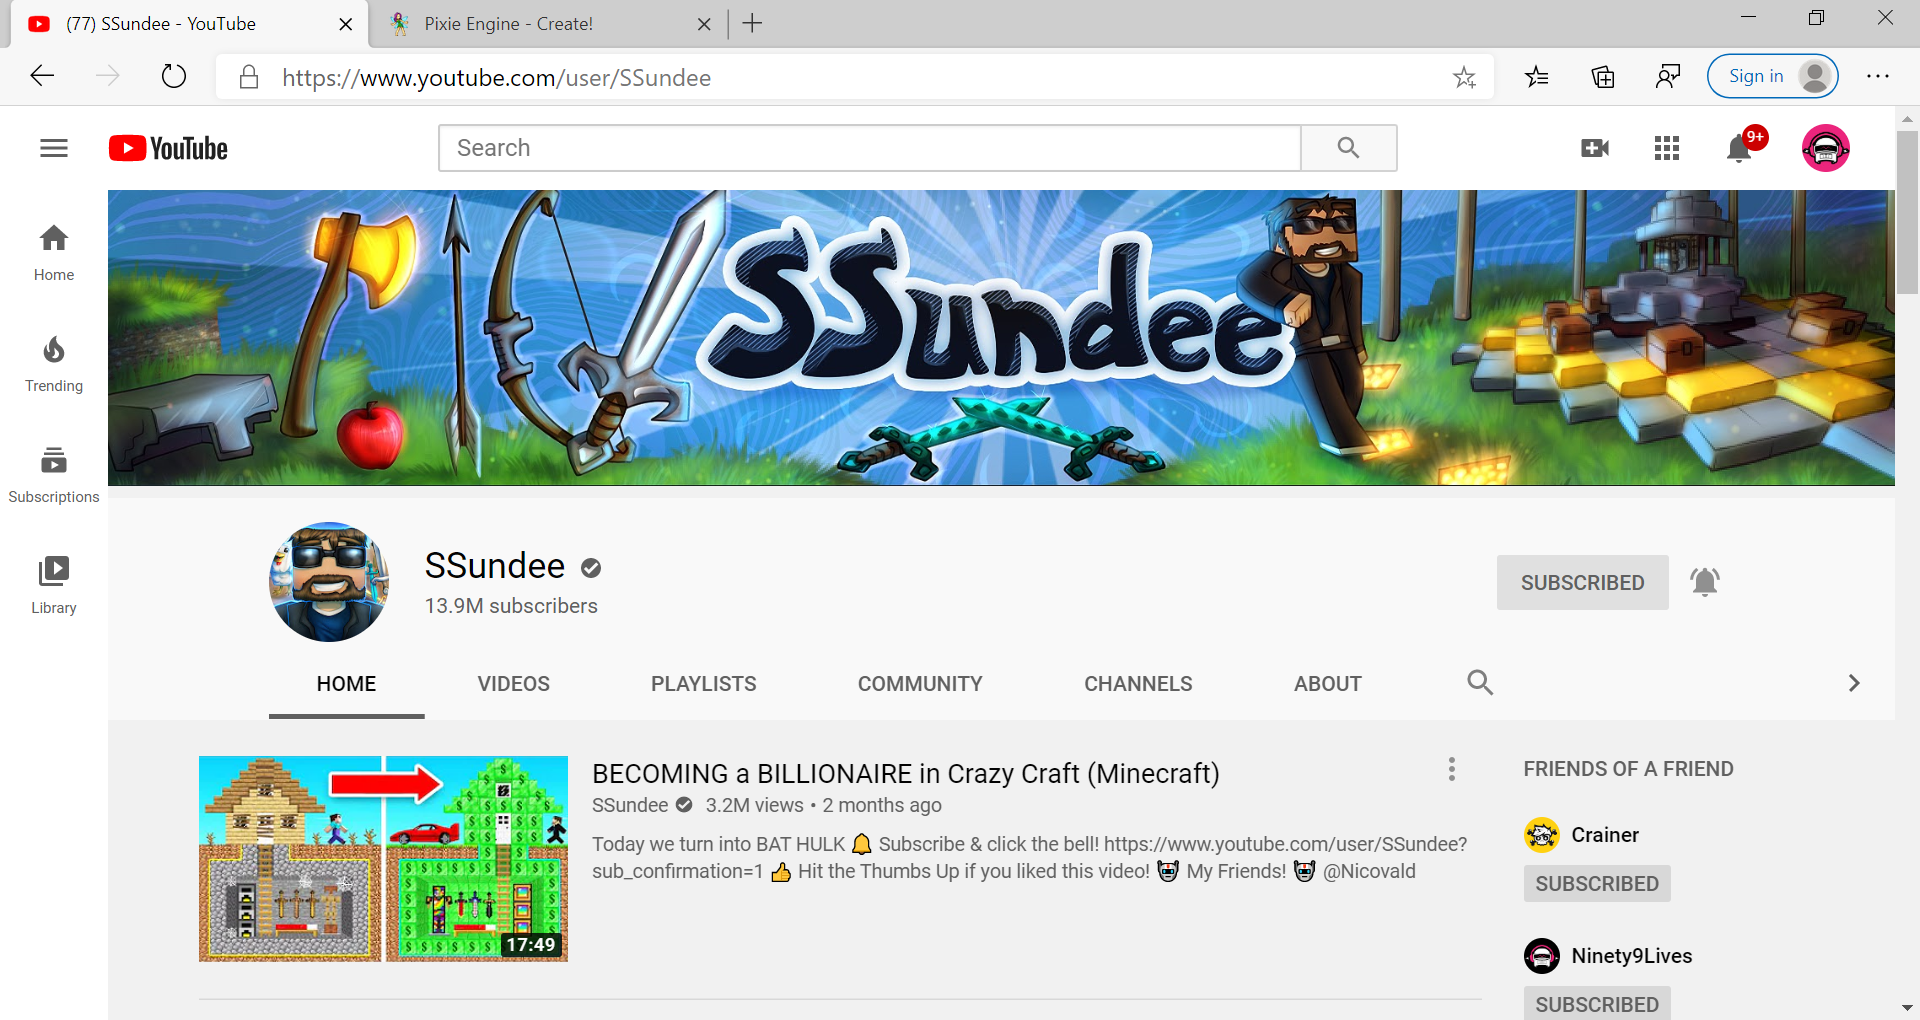 YouTube SSundee